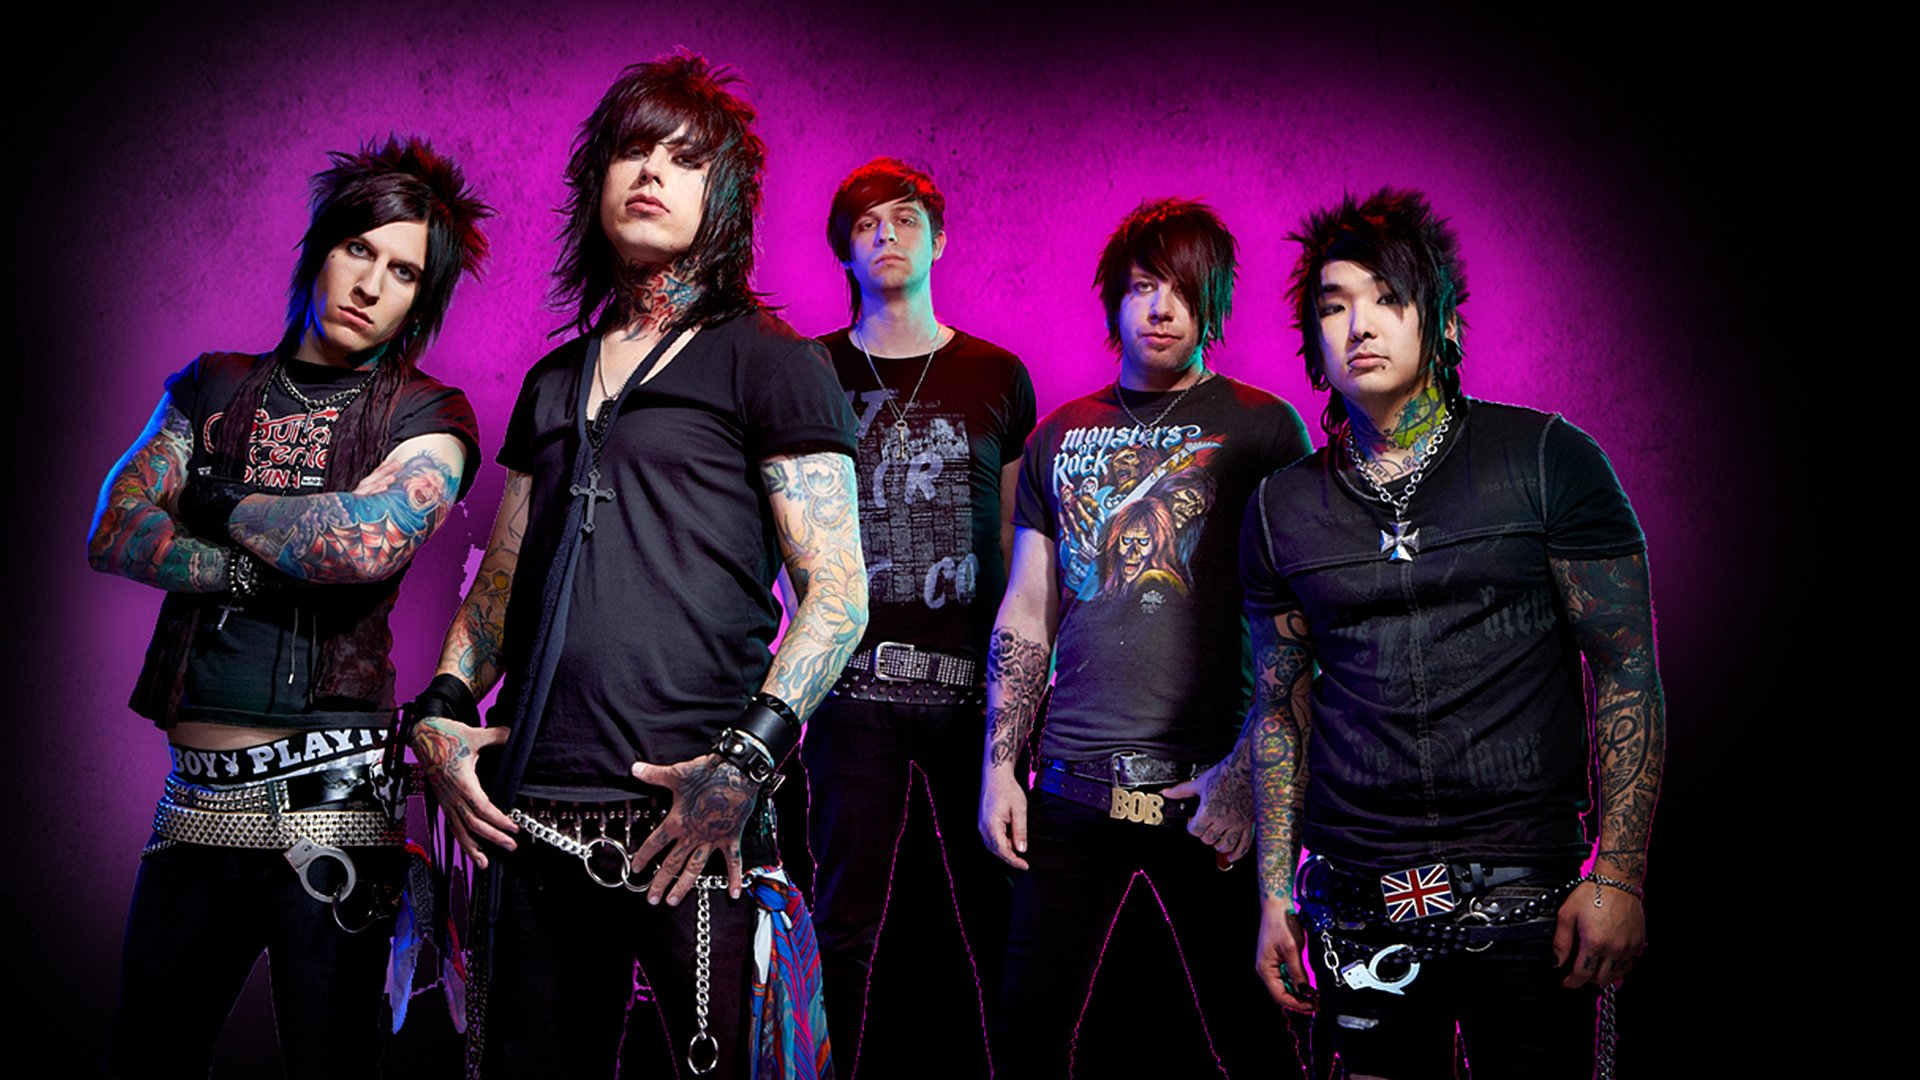 Falling In Reverse Wallpaper Iphone 4 Falling In Reverse Full Hd Wallpaper And Background